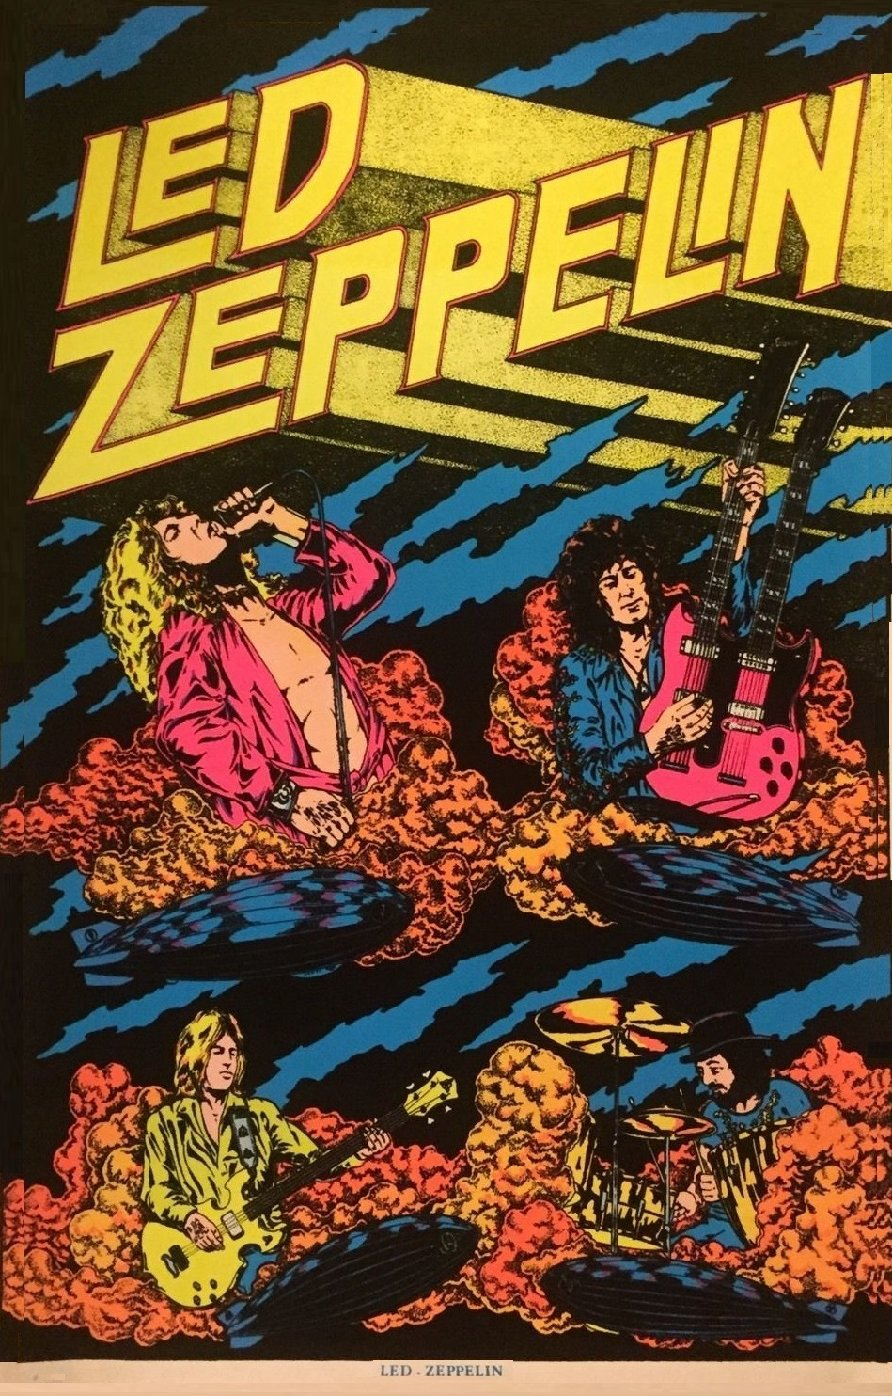 Led Zeppelin Concert Poster  13x19 inches